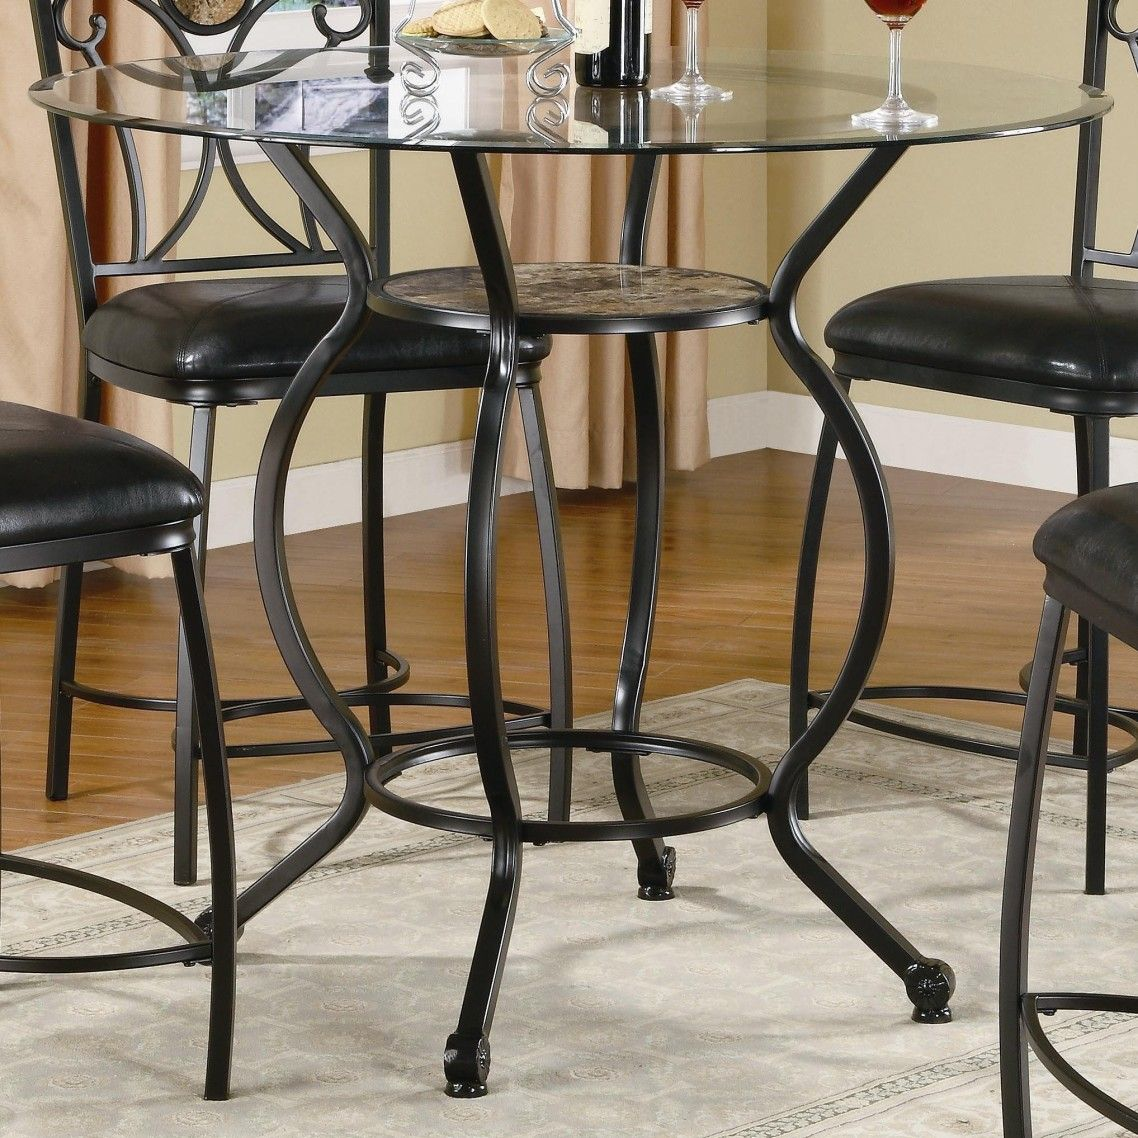 Awesome Round Glass Dining Table With Black Wrought Iron Base - Wrought iron round glass dining table